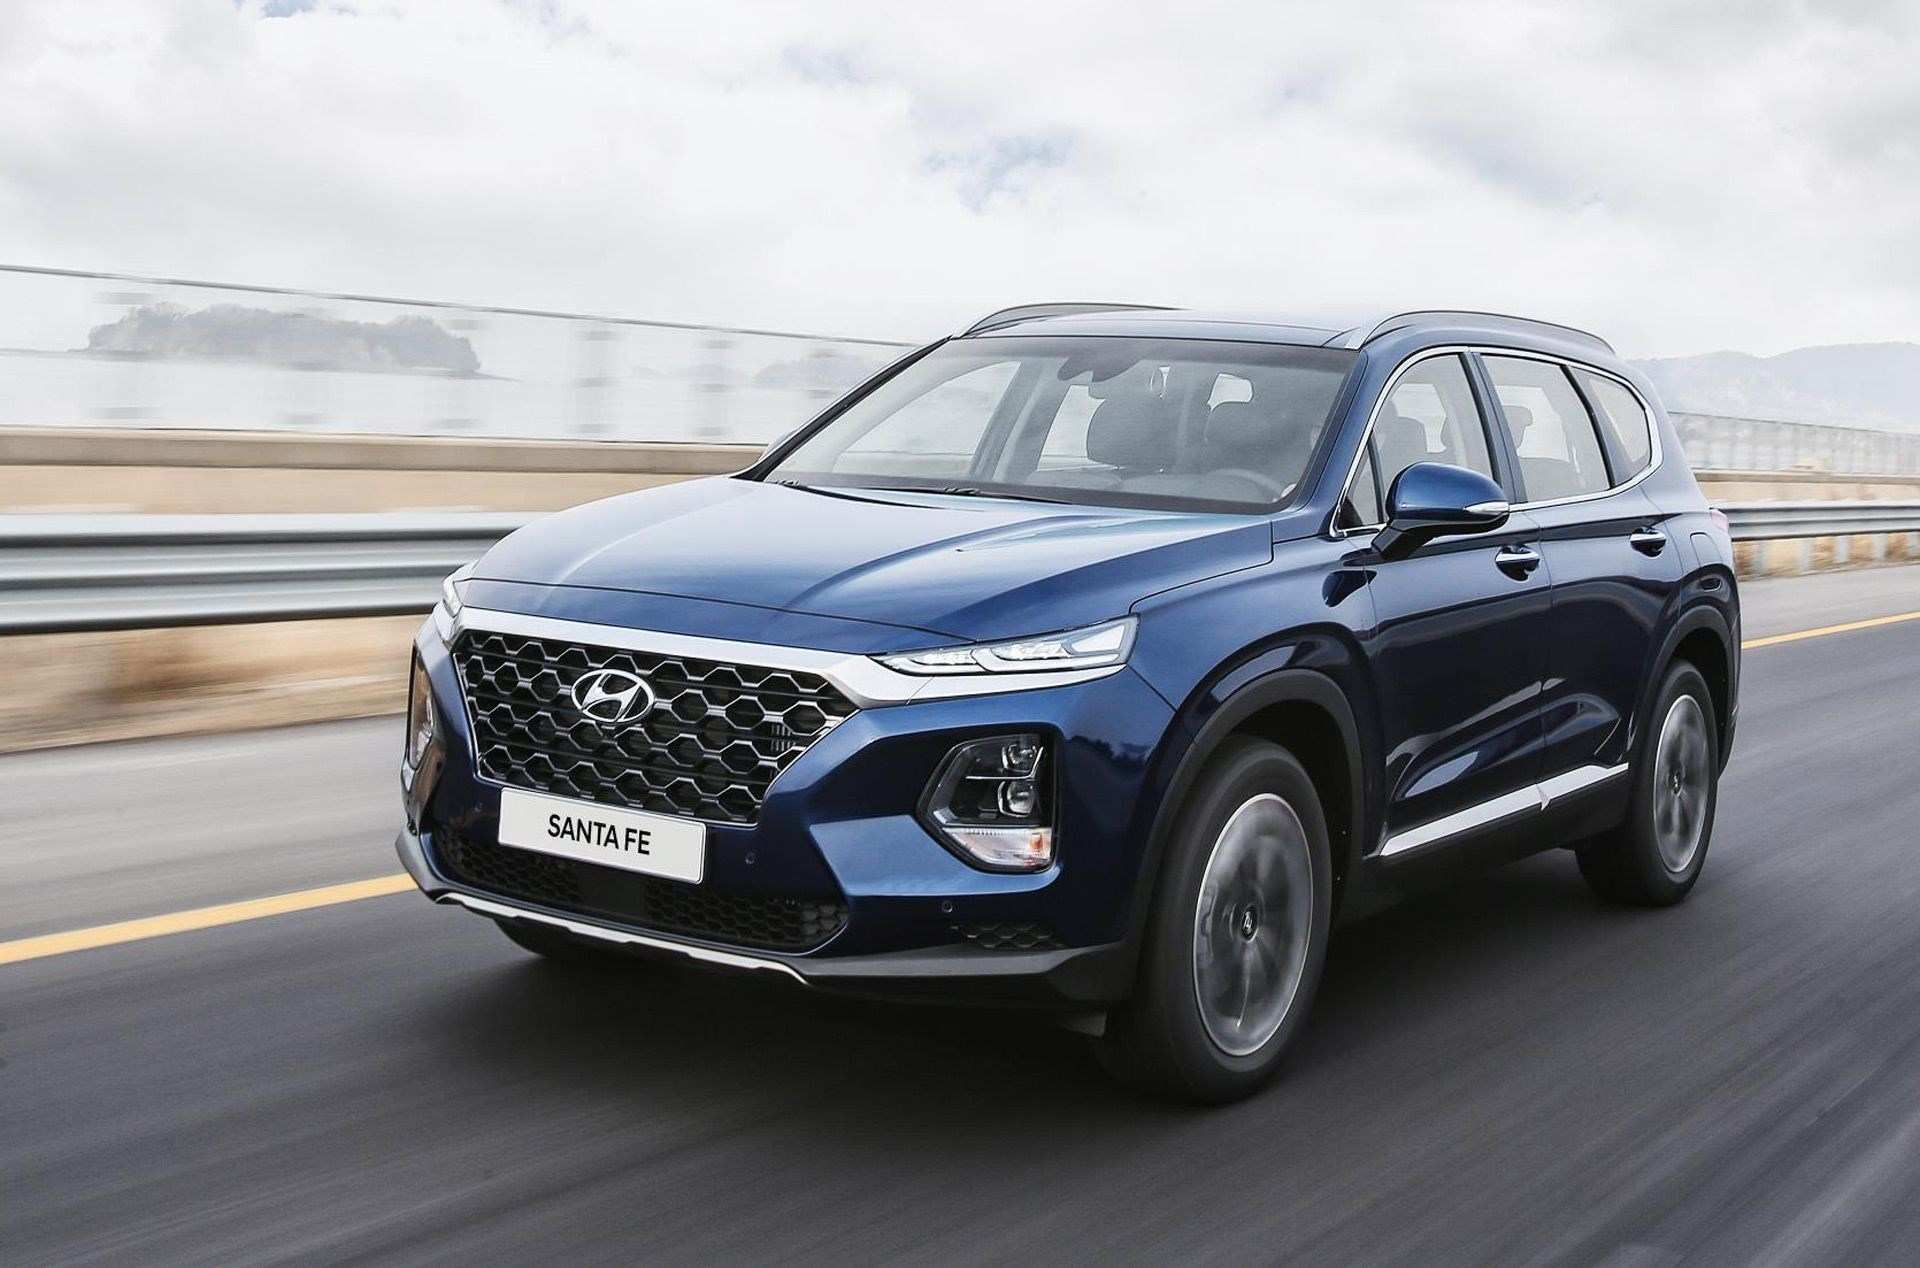 57 New When Does The 2020 Hyundai Kona Come Out Exterior